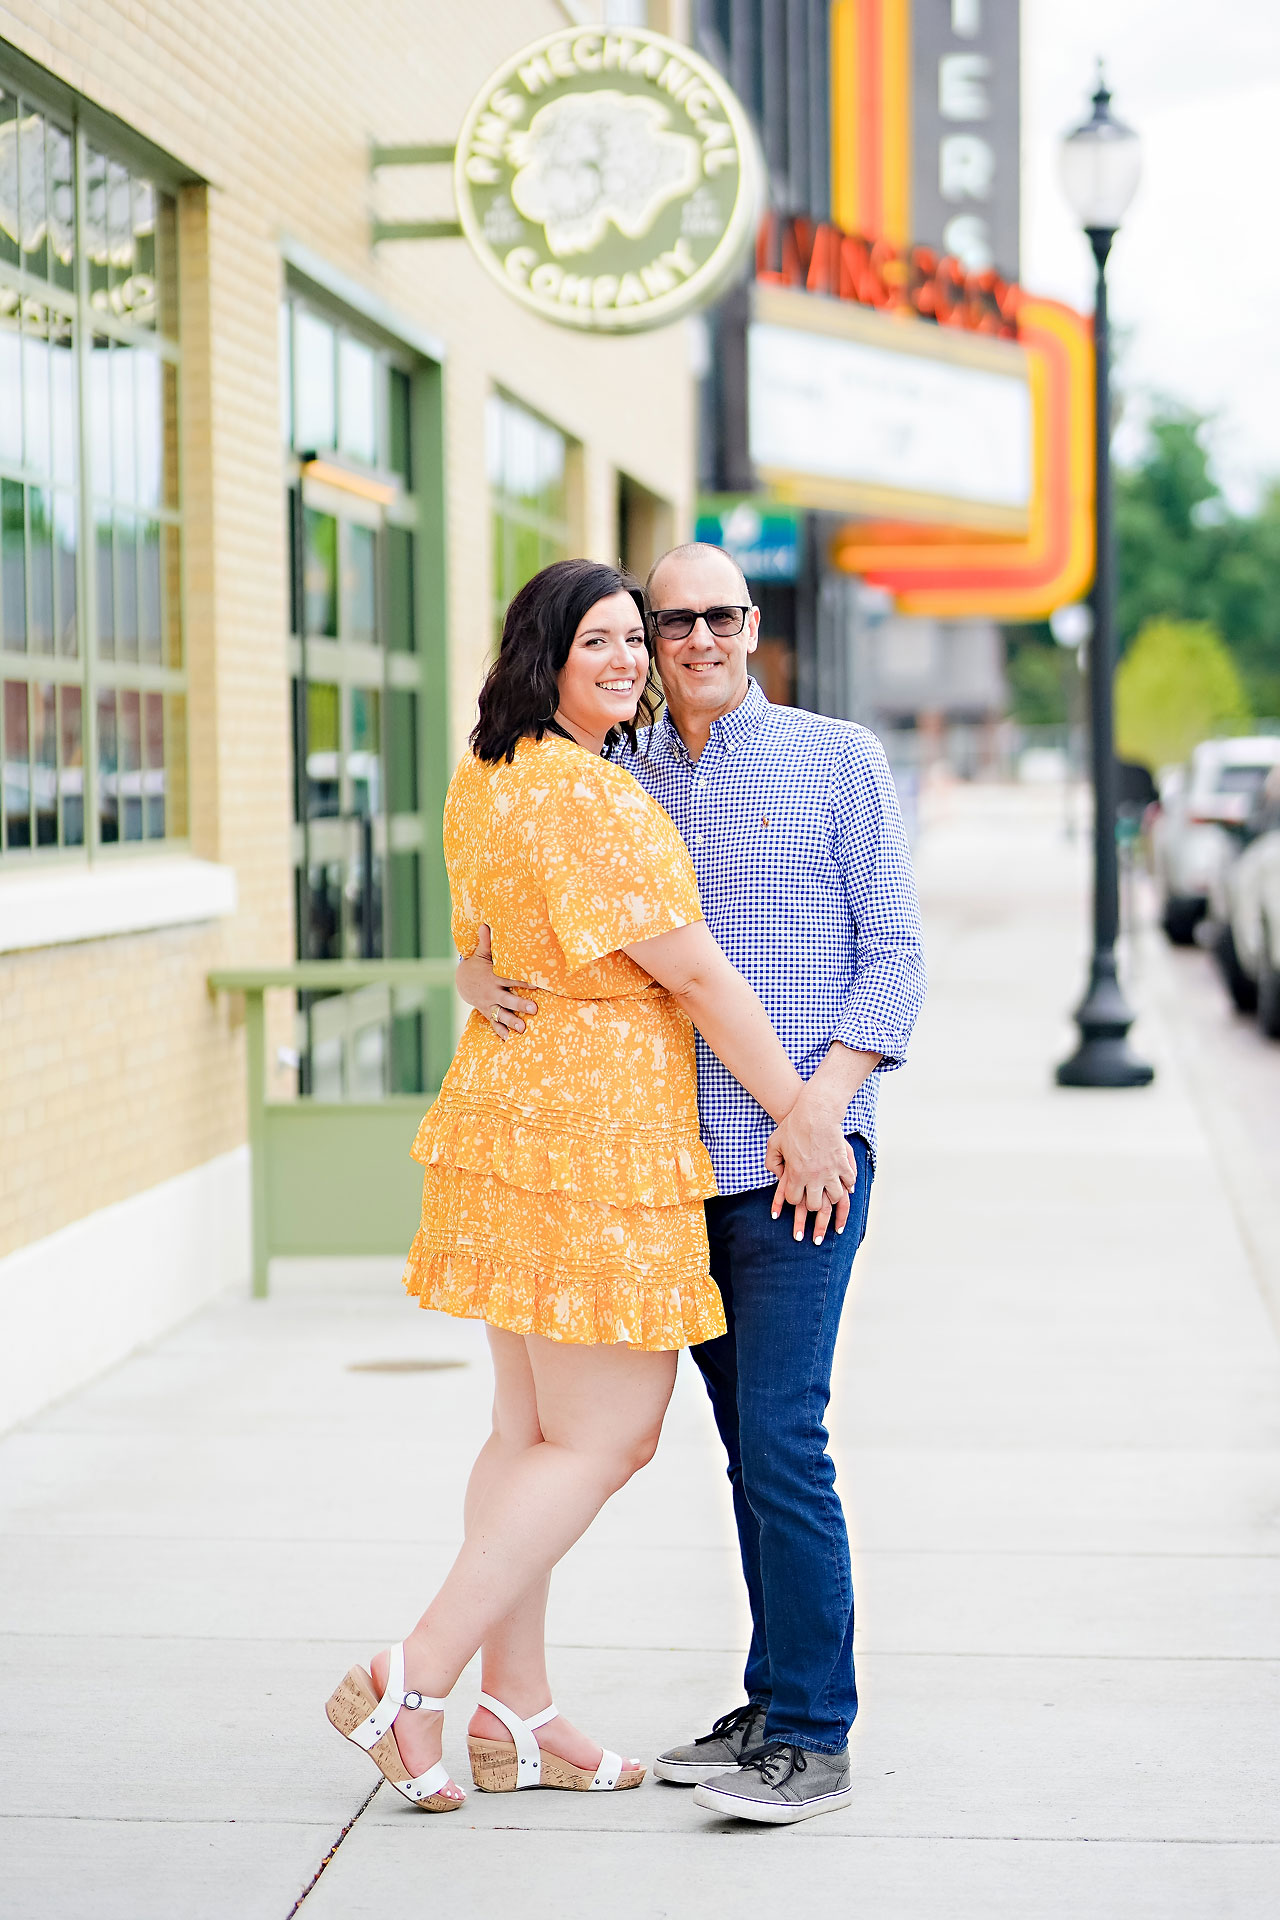 Katie Chuck Bottleworks Canal Indianapolis Engagement Session 036